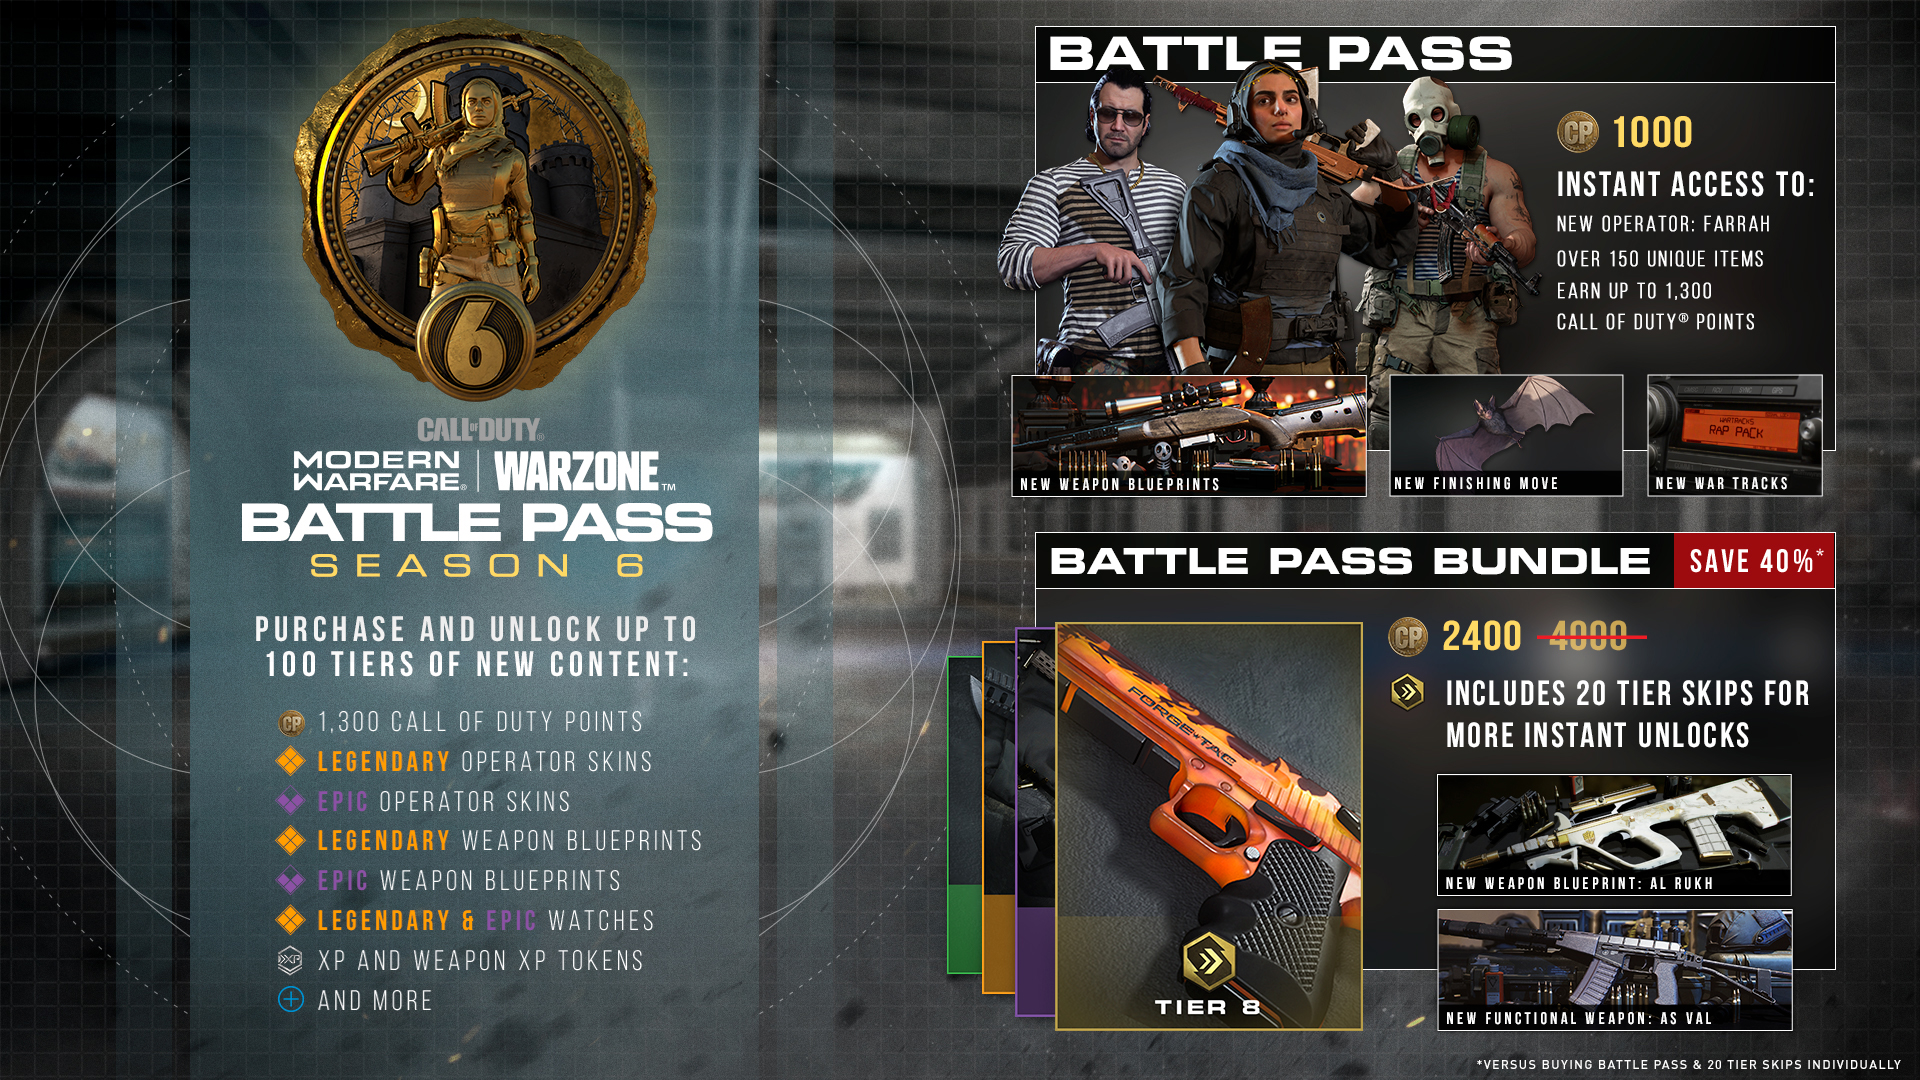 Call of Duty Modern Warfare Season 6 Battle Pass Bundle